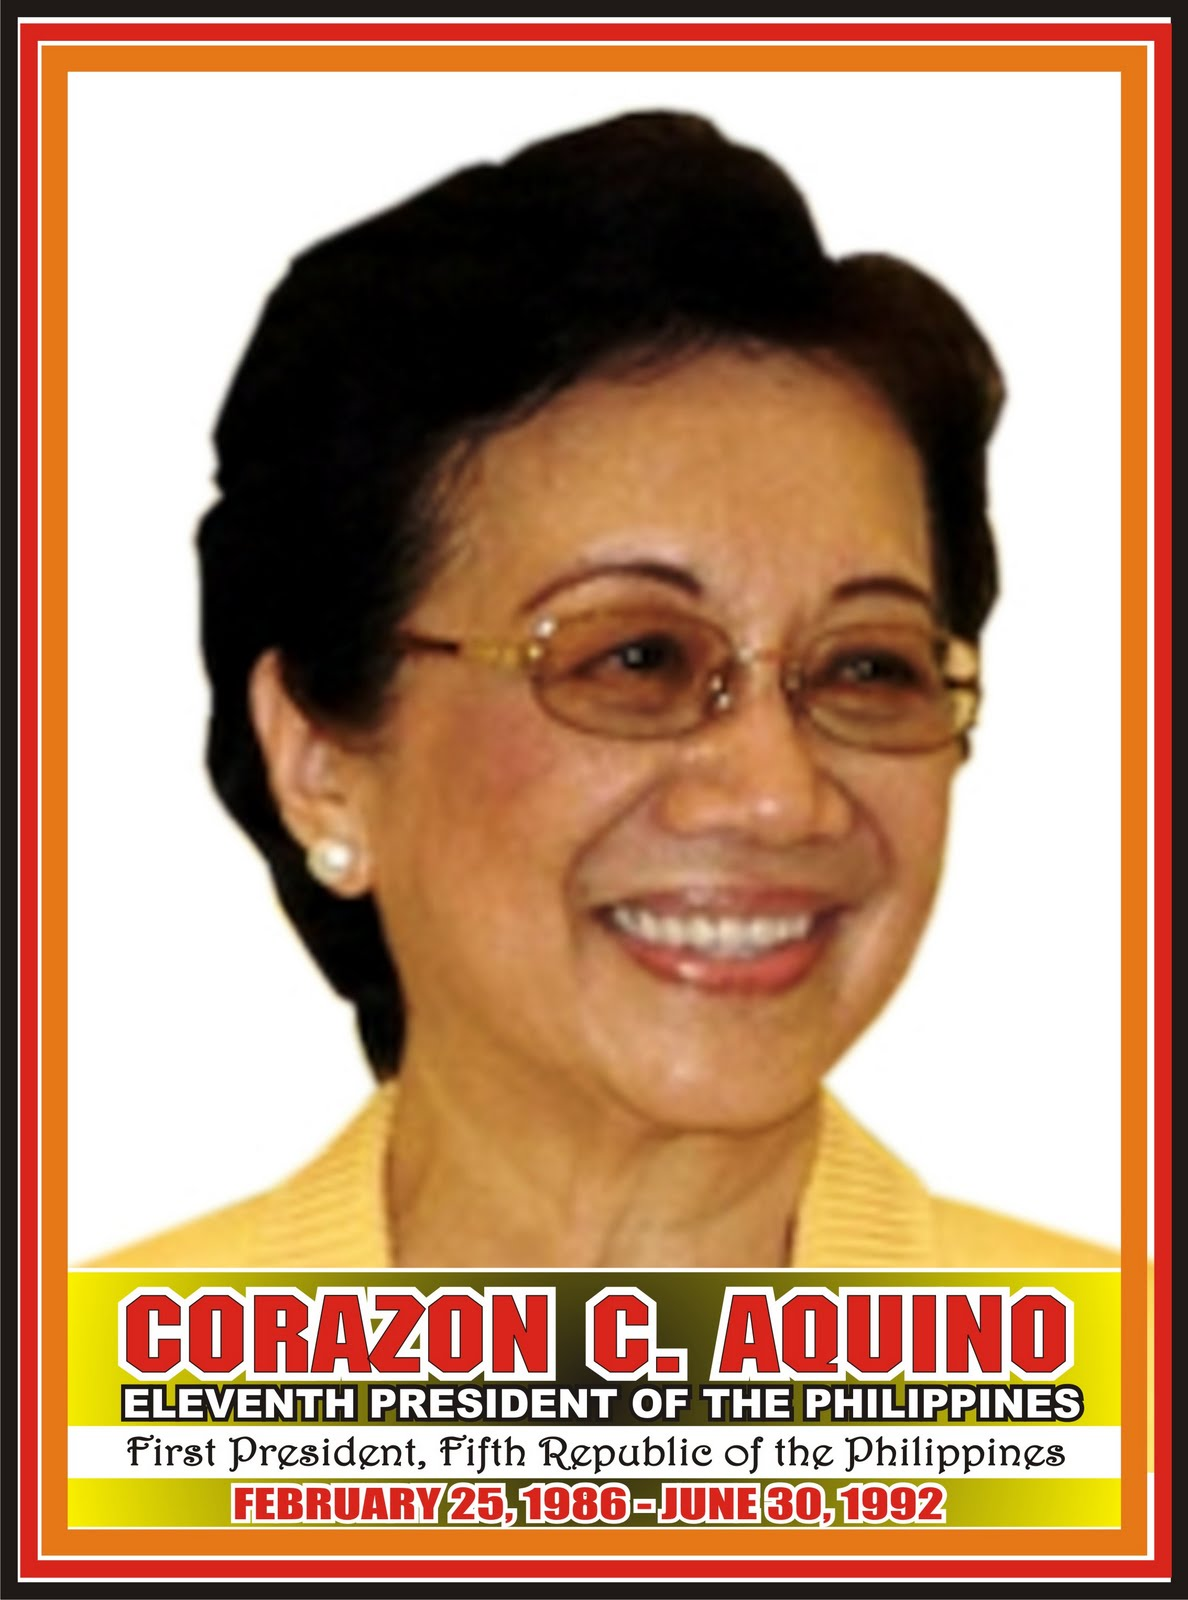 a biography of corazon aquino cory the first woman president of the philippines Corazon aquino from wikipedia she was the first female president of the i am saddened to hear of the death of corazon cory aquino the former president of t.